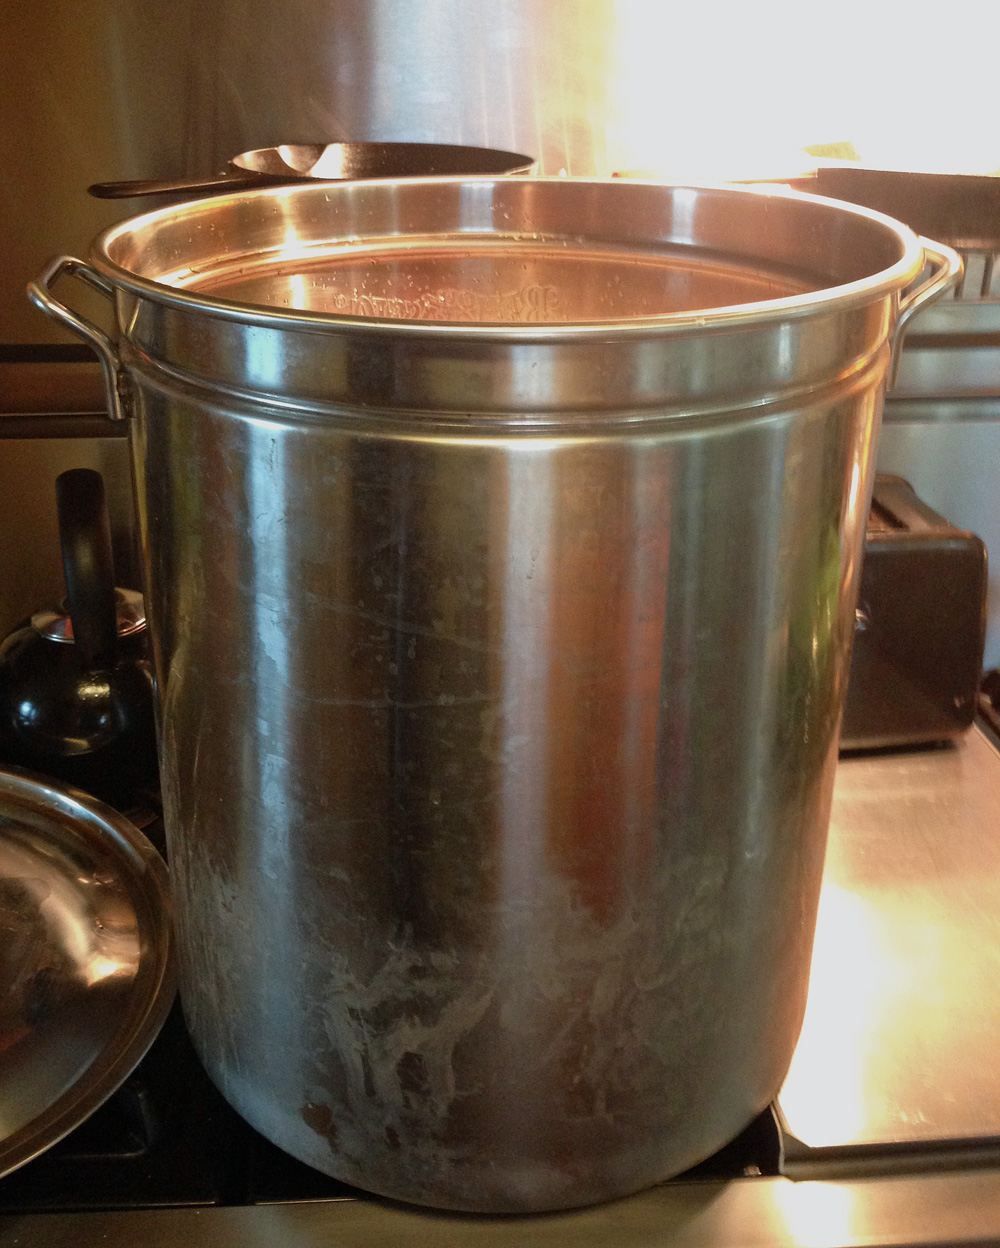 Here is our 62-quart stock pot... the Bone Broth Pot!